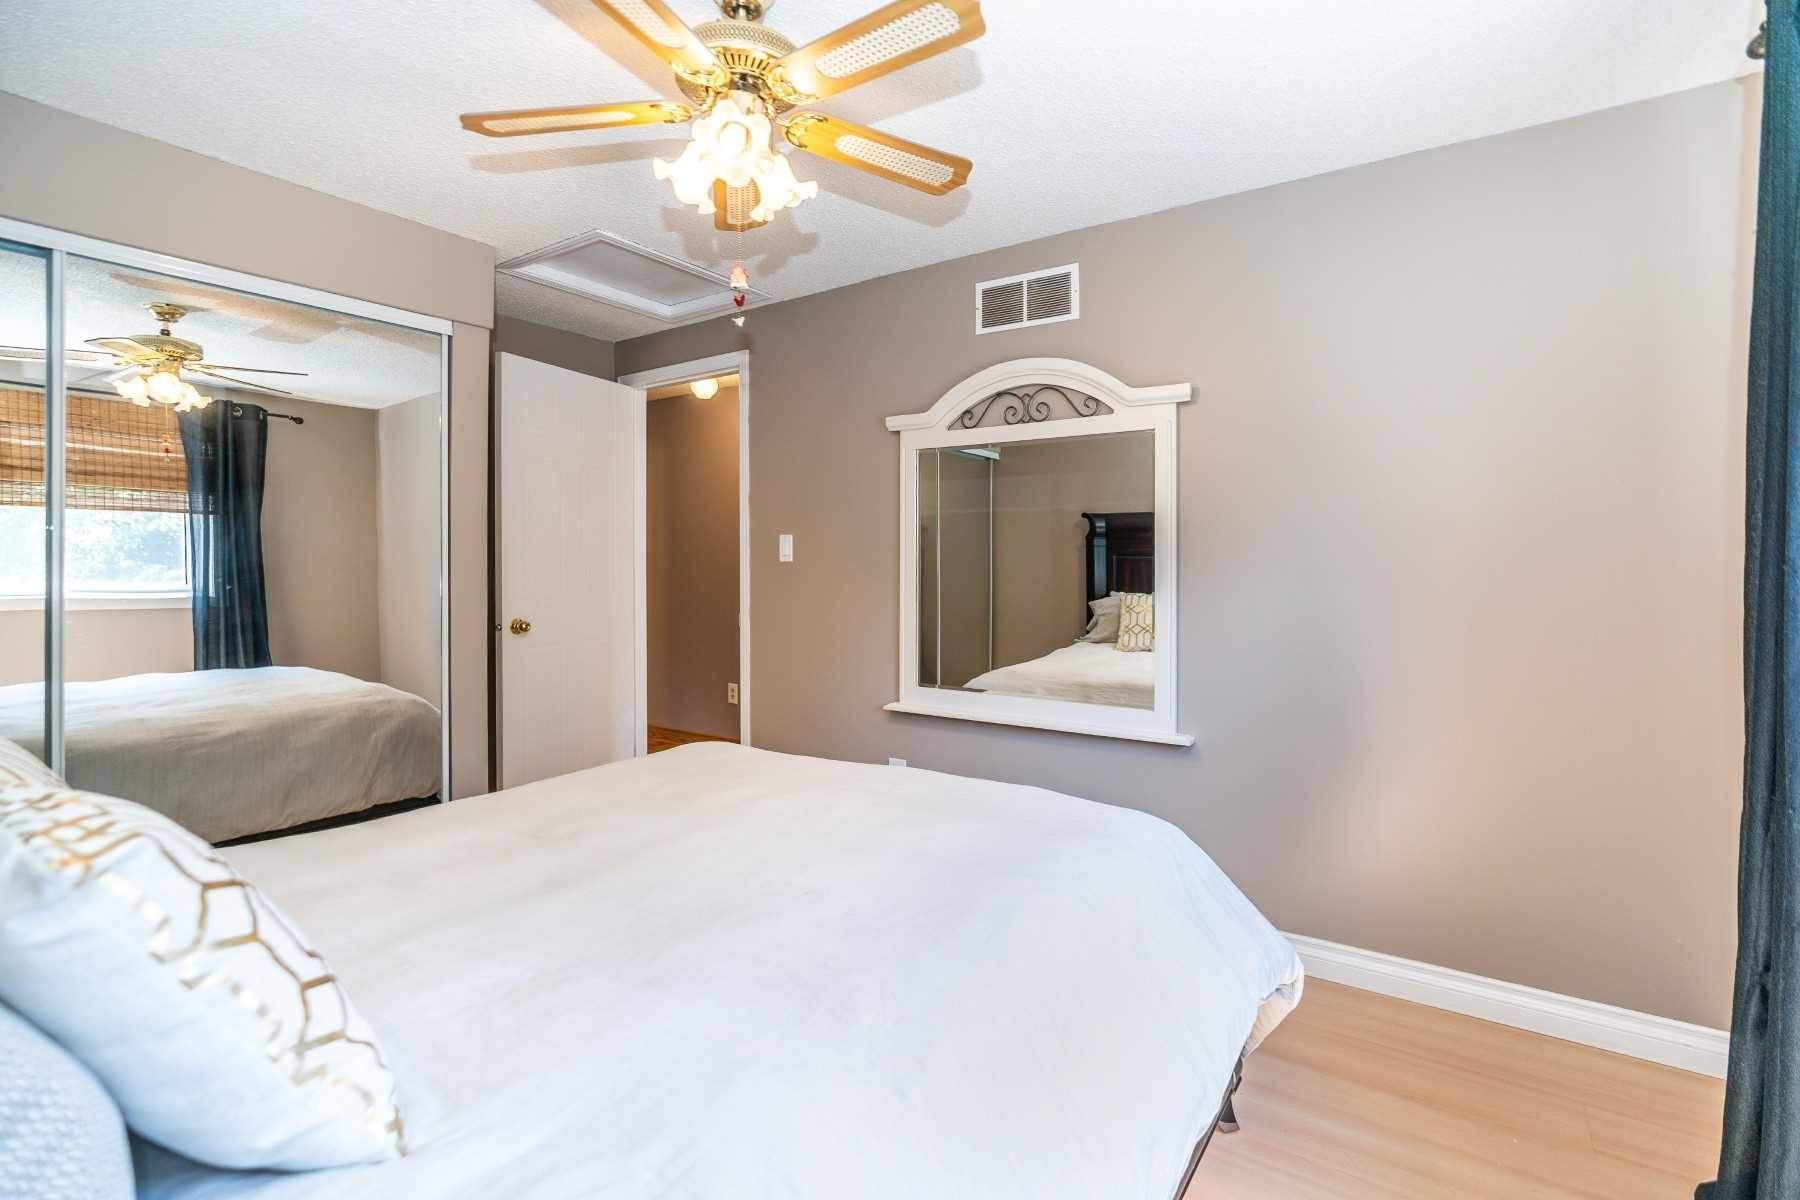 Photo 25: Photos: 1153 Snowberry Court in Oshawa: Pinecrest House (2-Storey) for sale : MLS®# E4794796